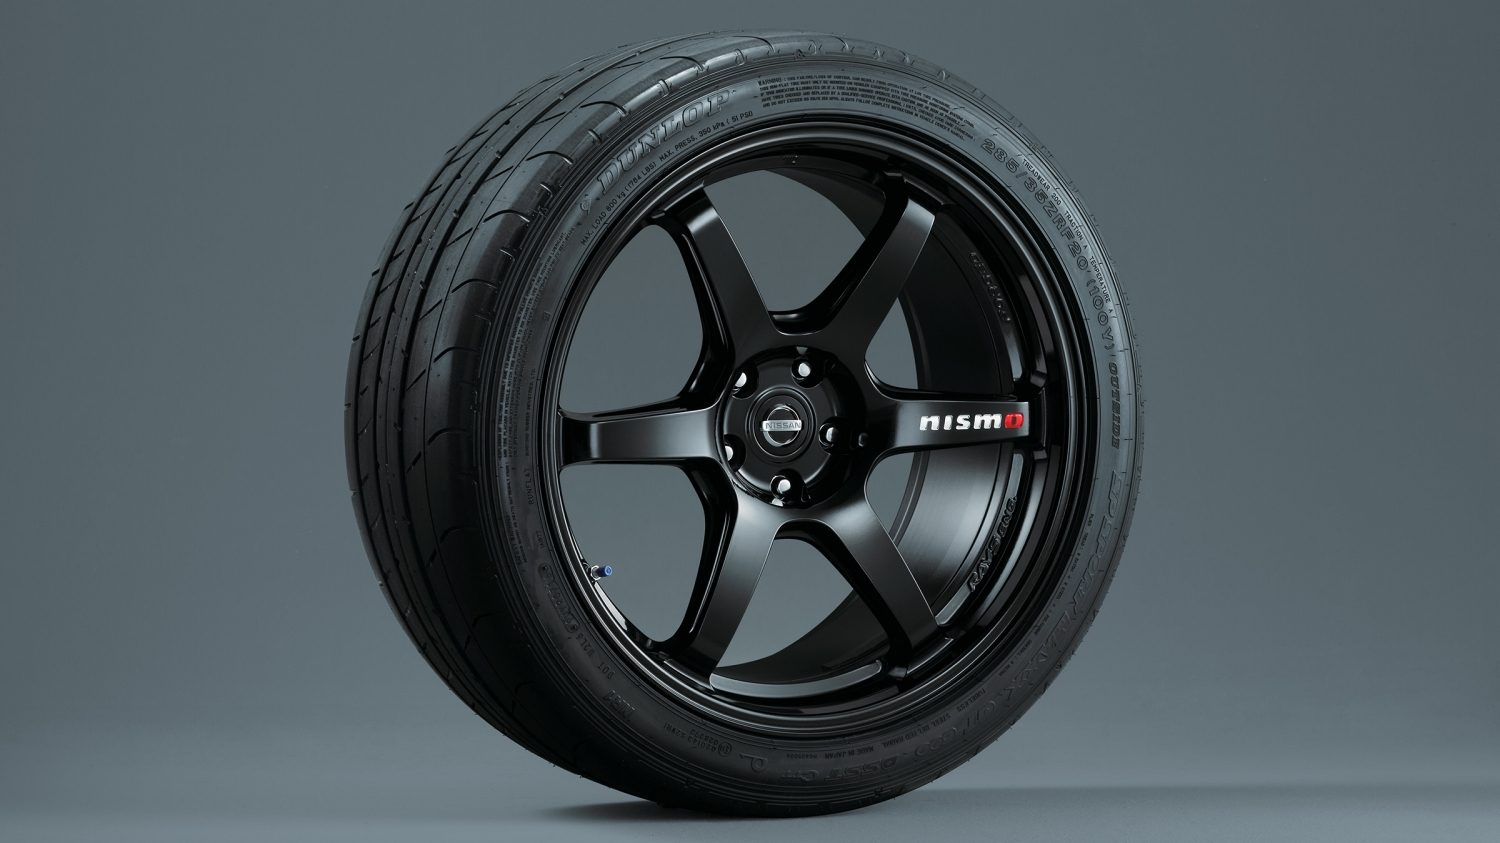 Nissan GT-R NISMO forged wheel